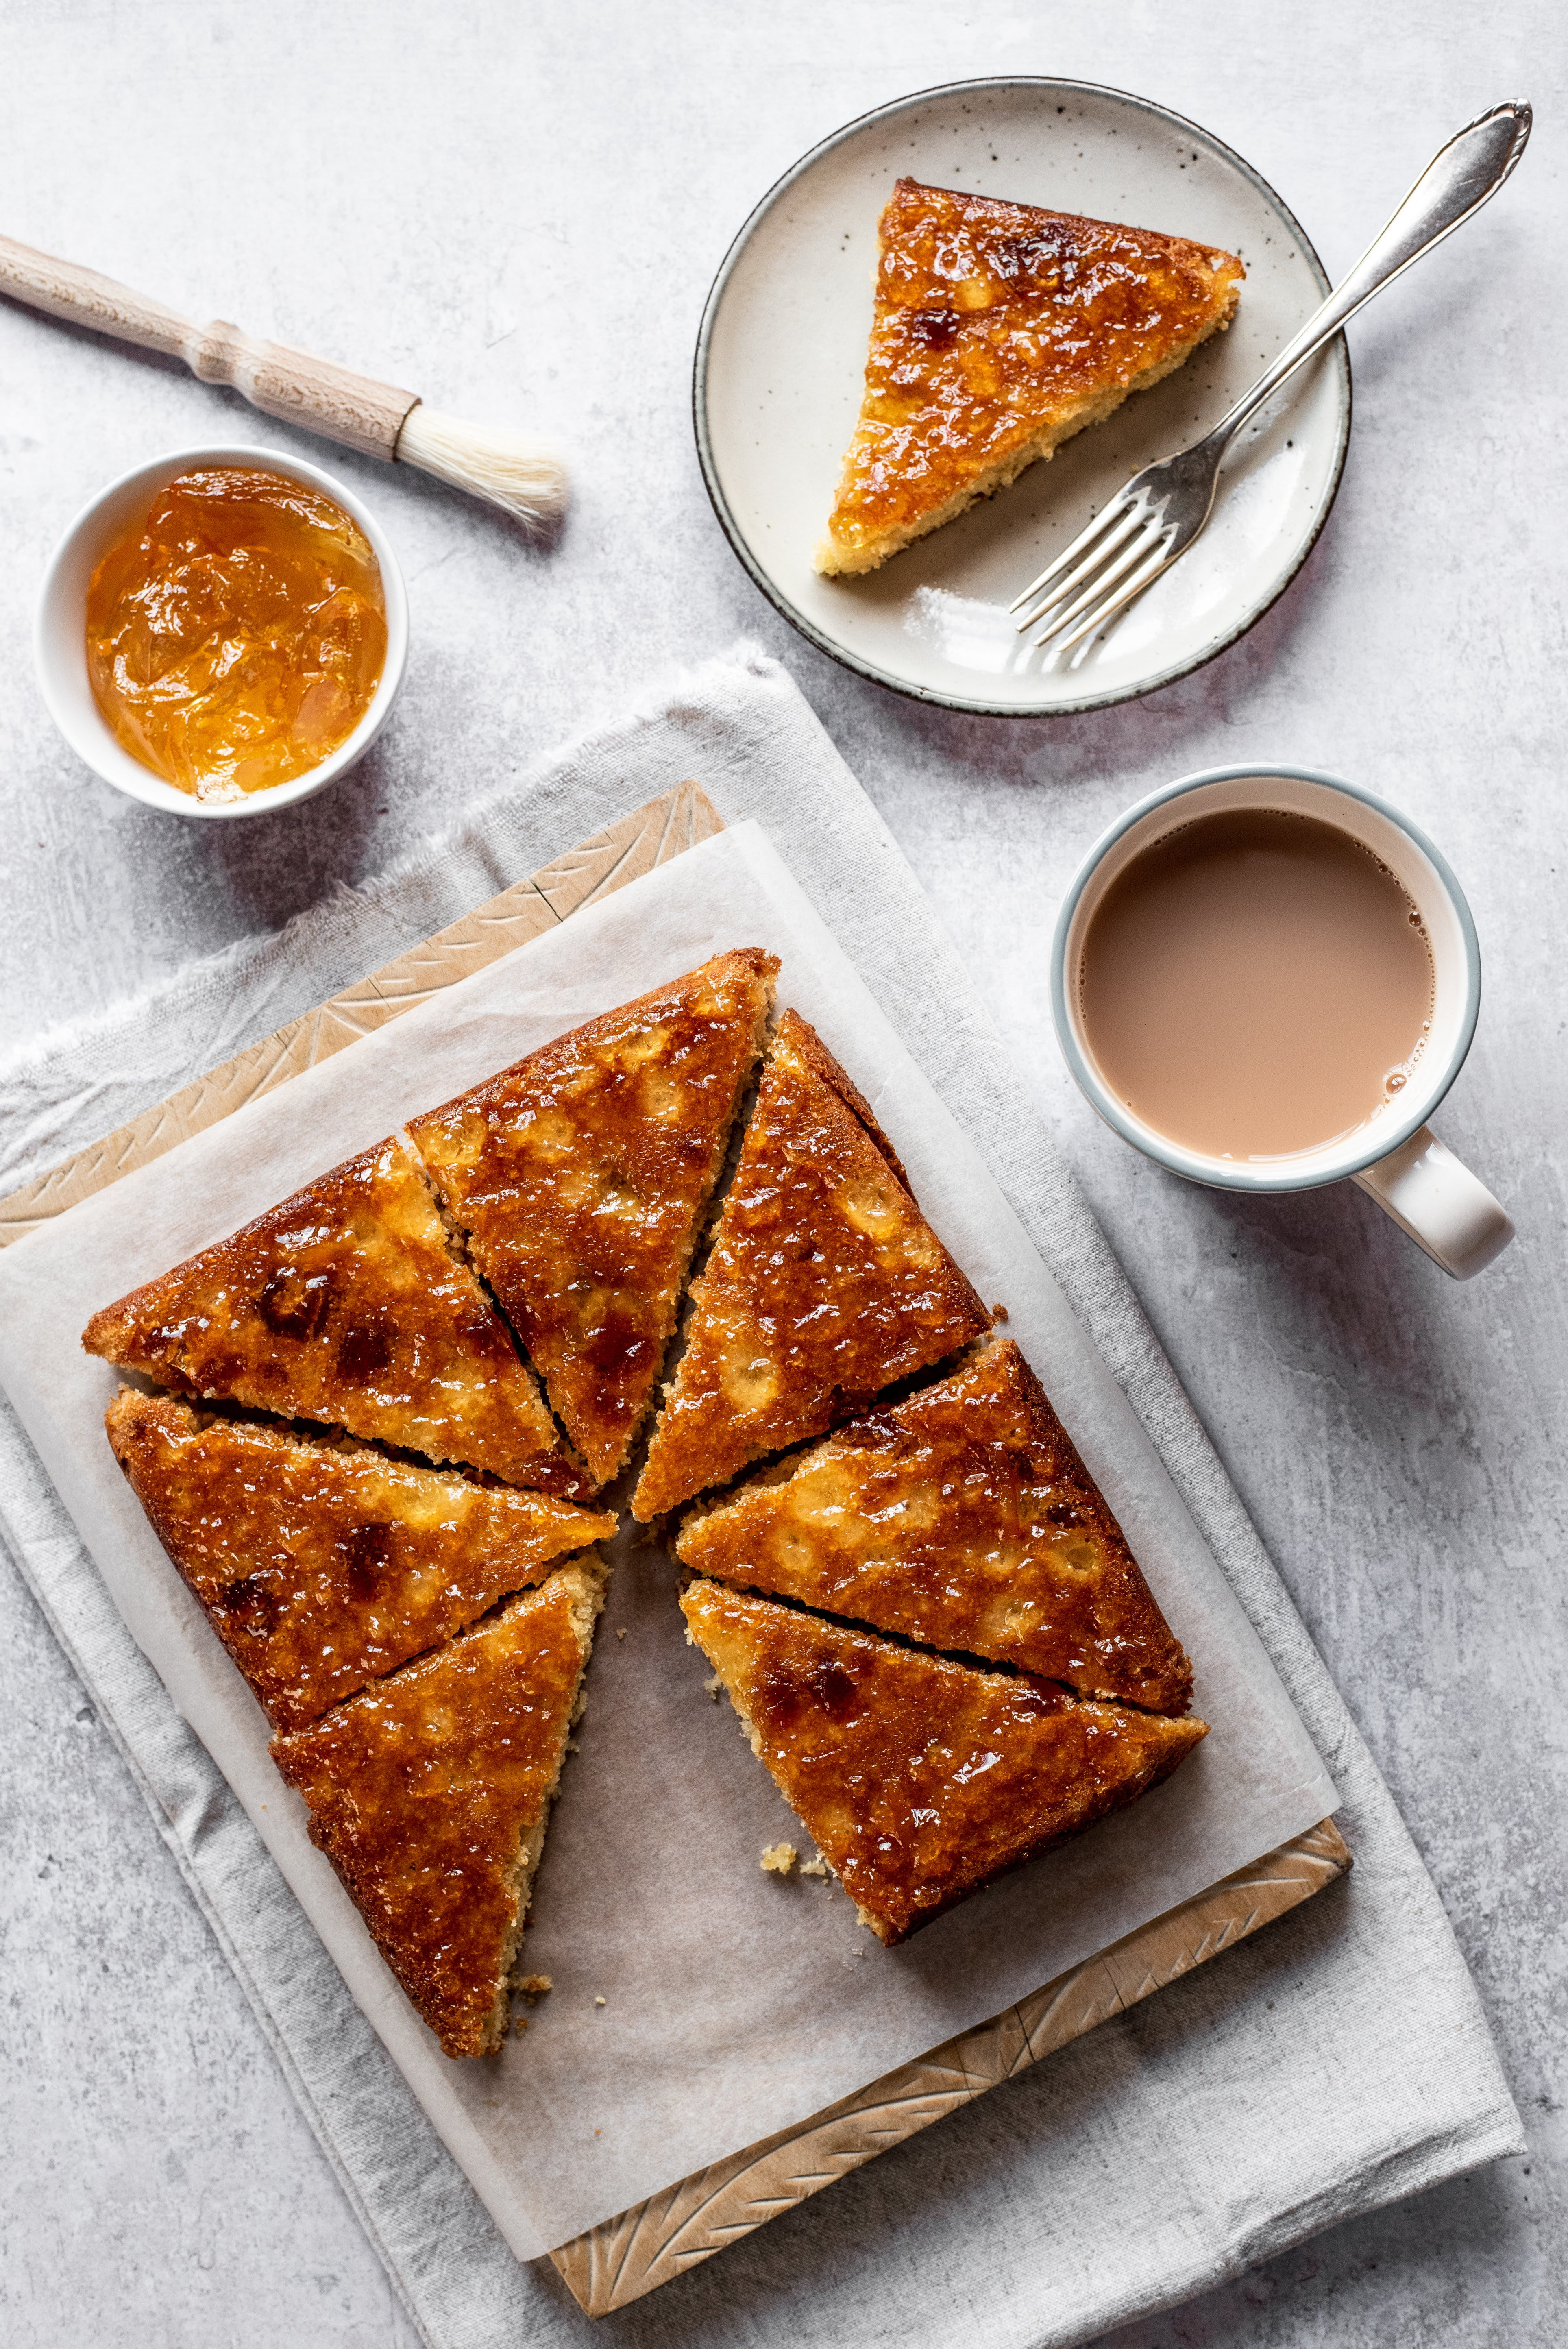 Top view of Marmalade Traybake sliced into pieces, on a sheet of baking paper, next to a cup of tea and a bowl of marmalade